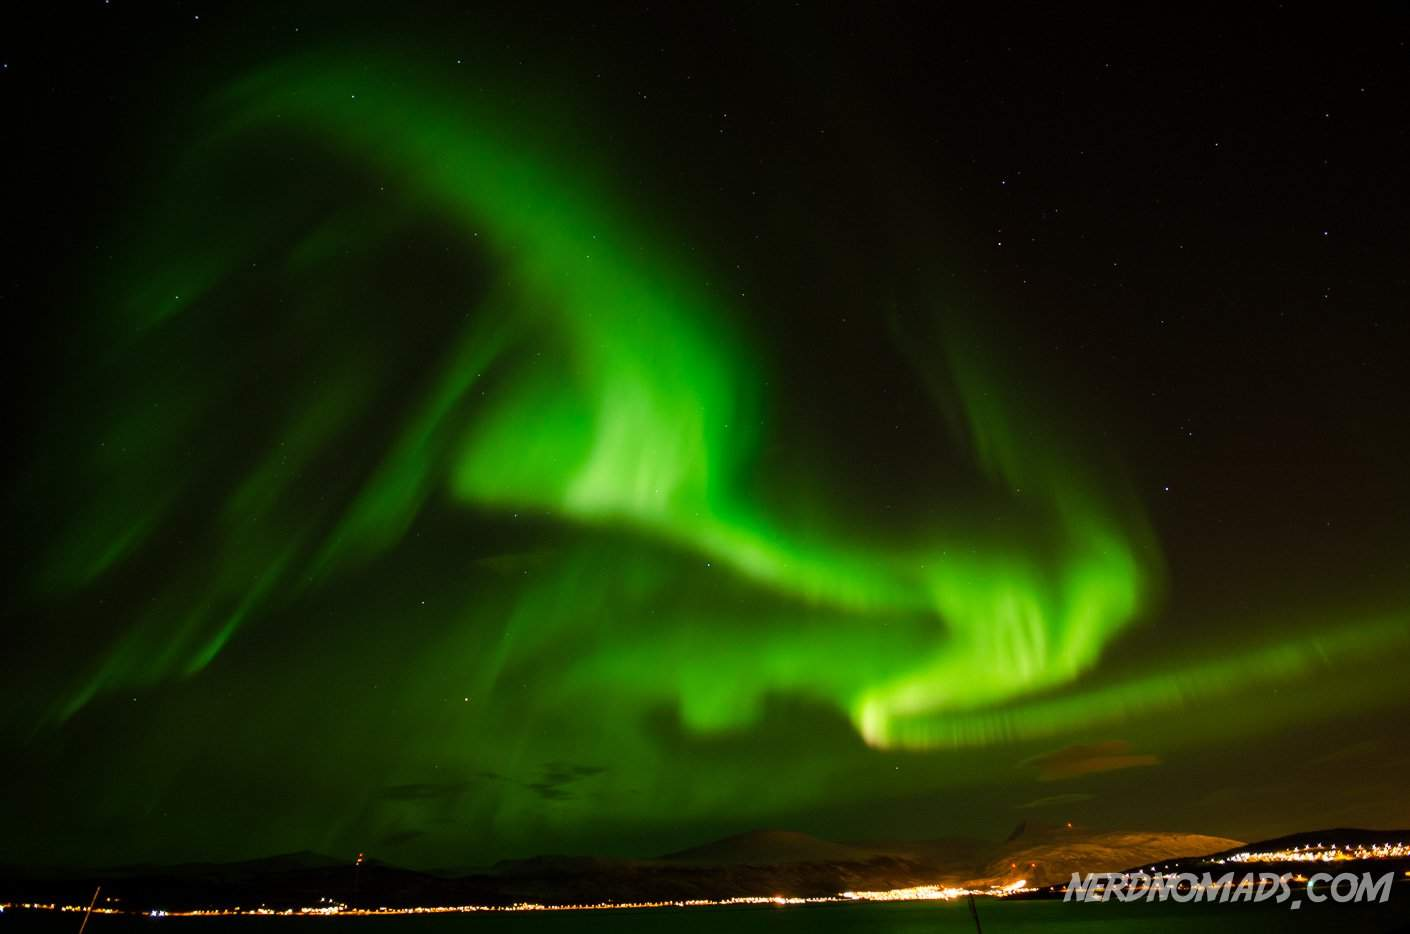 Chasing The Northern Lights In Tromso Norway Nerd Nomads